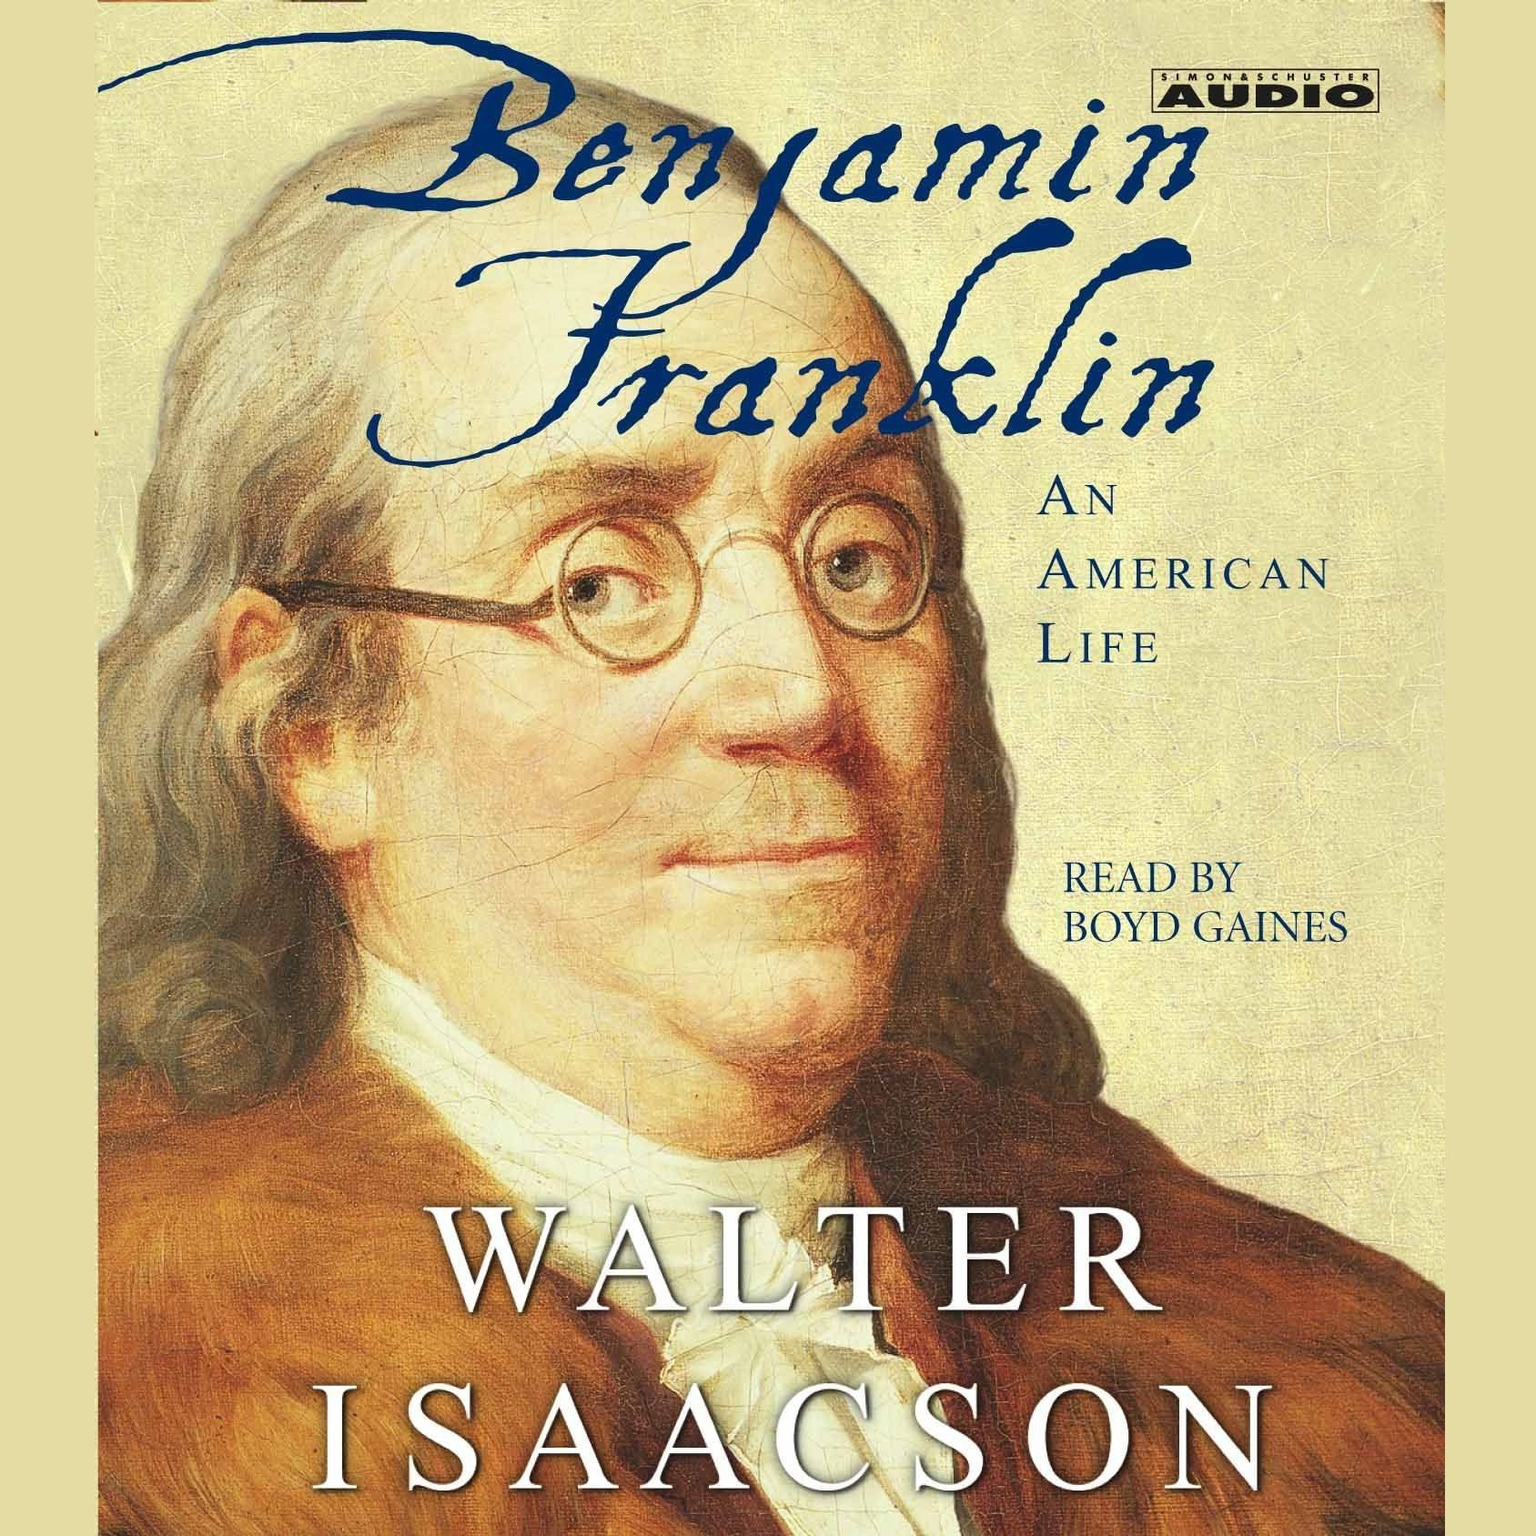 hear benjamin franklin abridged audiobook by walter isaacson for extended audio sample benjamin franklin an american life audiobook by walter isaacson